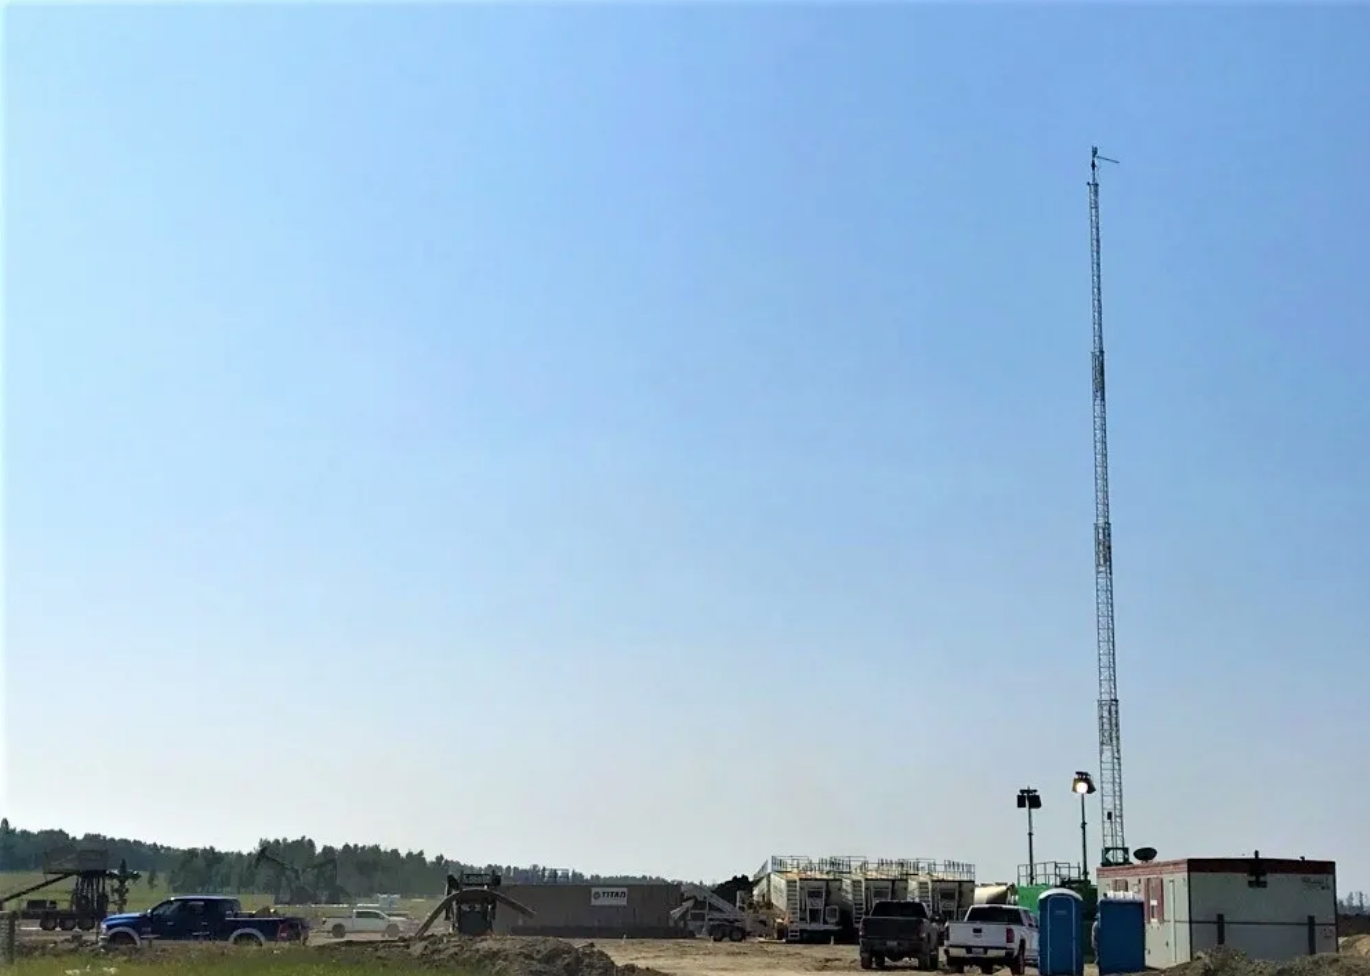 Communication tower at a remote worksite